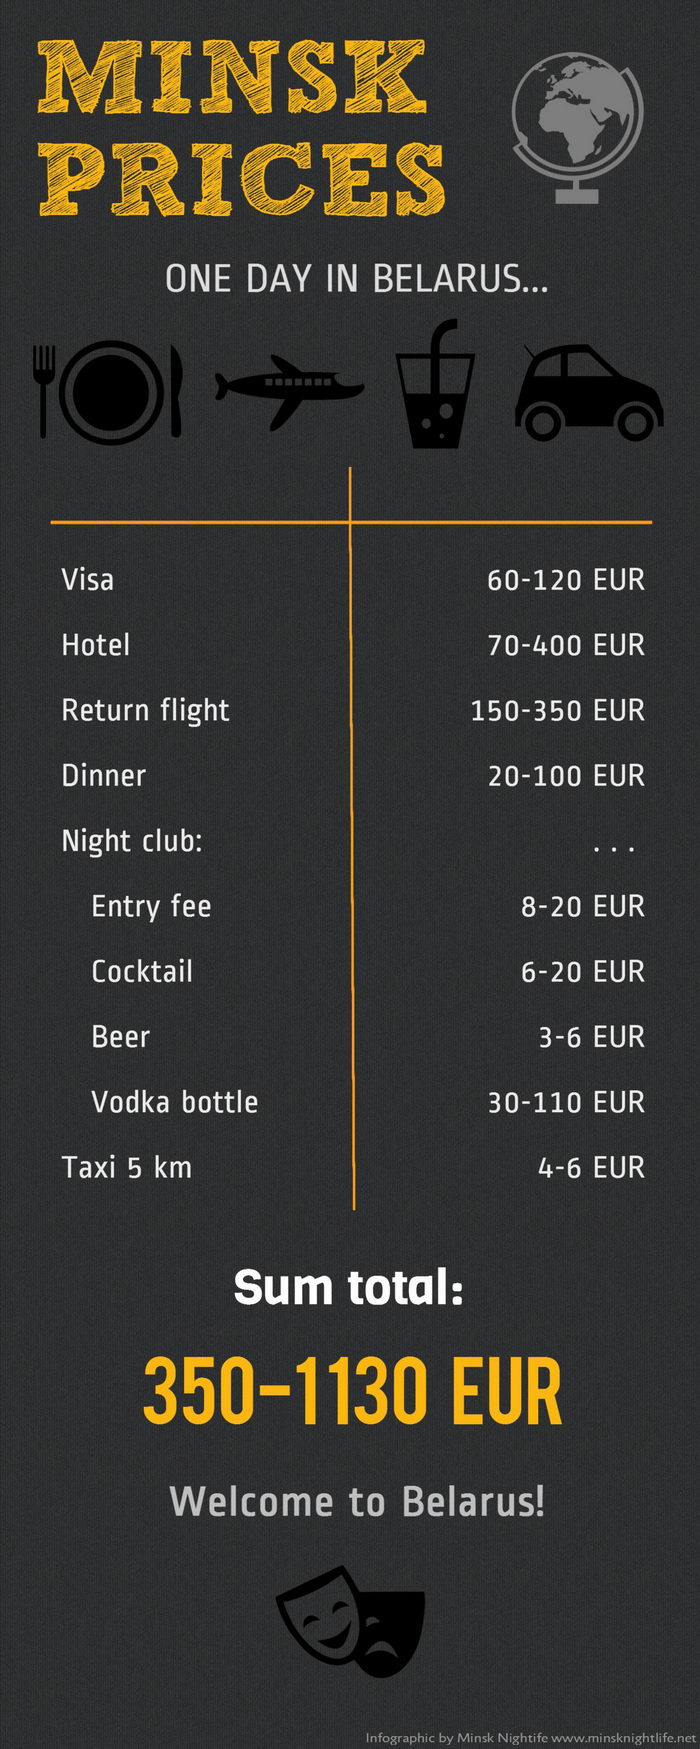 infographic price of one day trip to minsk belarus